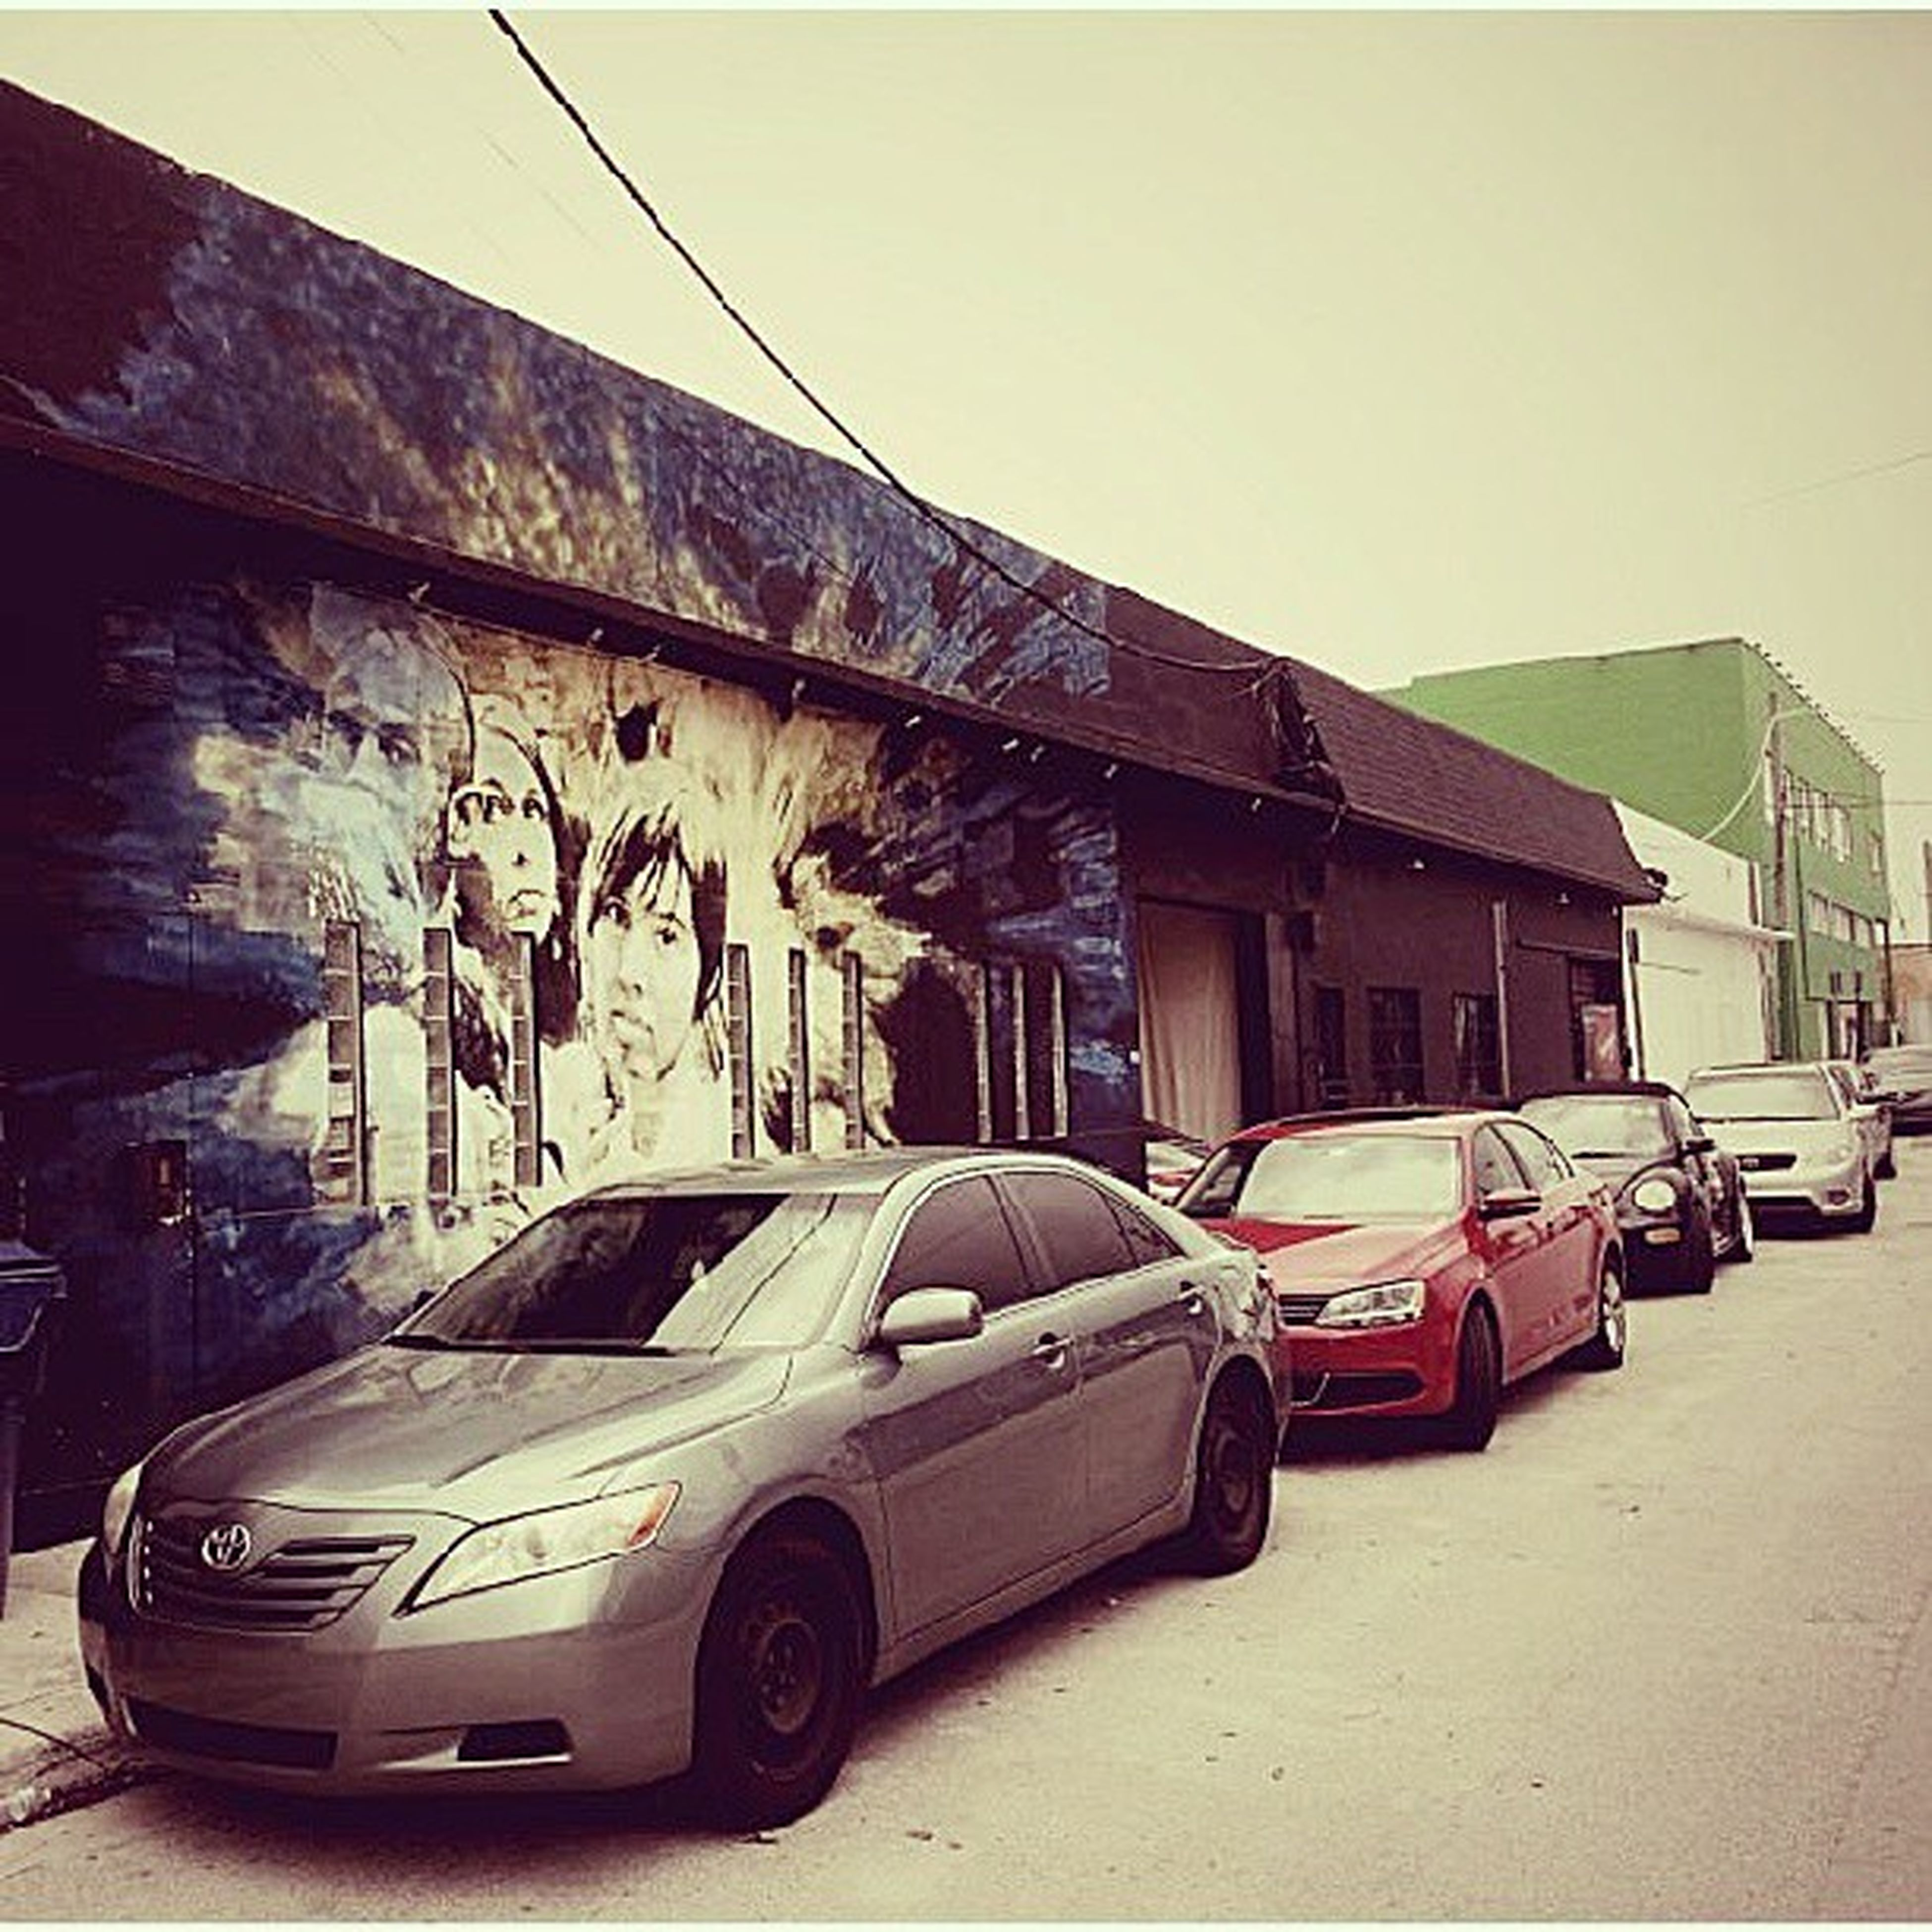 transportation, architecture, built structure, land vehicle, building exterior, car, mode of transport, graffiti, street, clear sky, road, parking, stationary, city, outdoors, day, no people, building, parked, wall - building feature